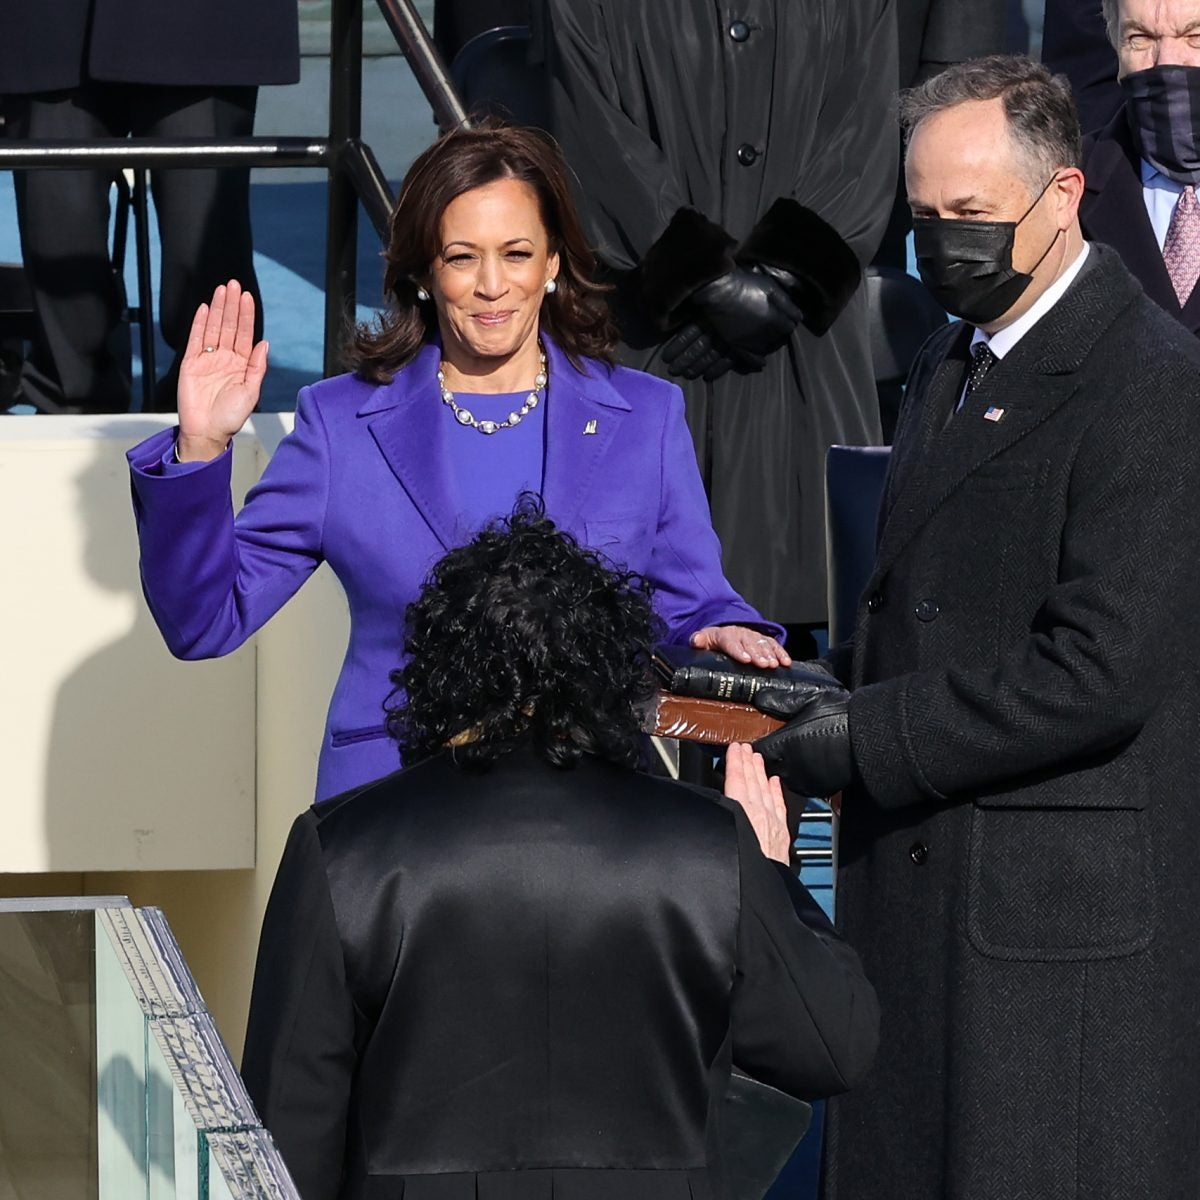 Kamala Harris Is Officially Sworn In As The First Black Woman Vice-President